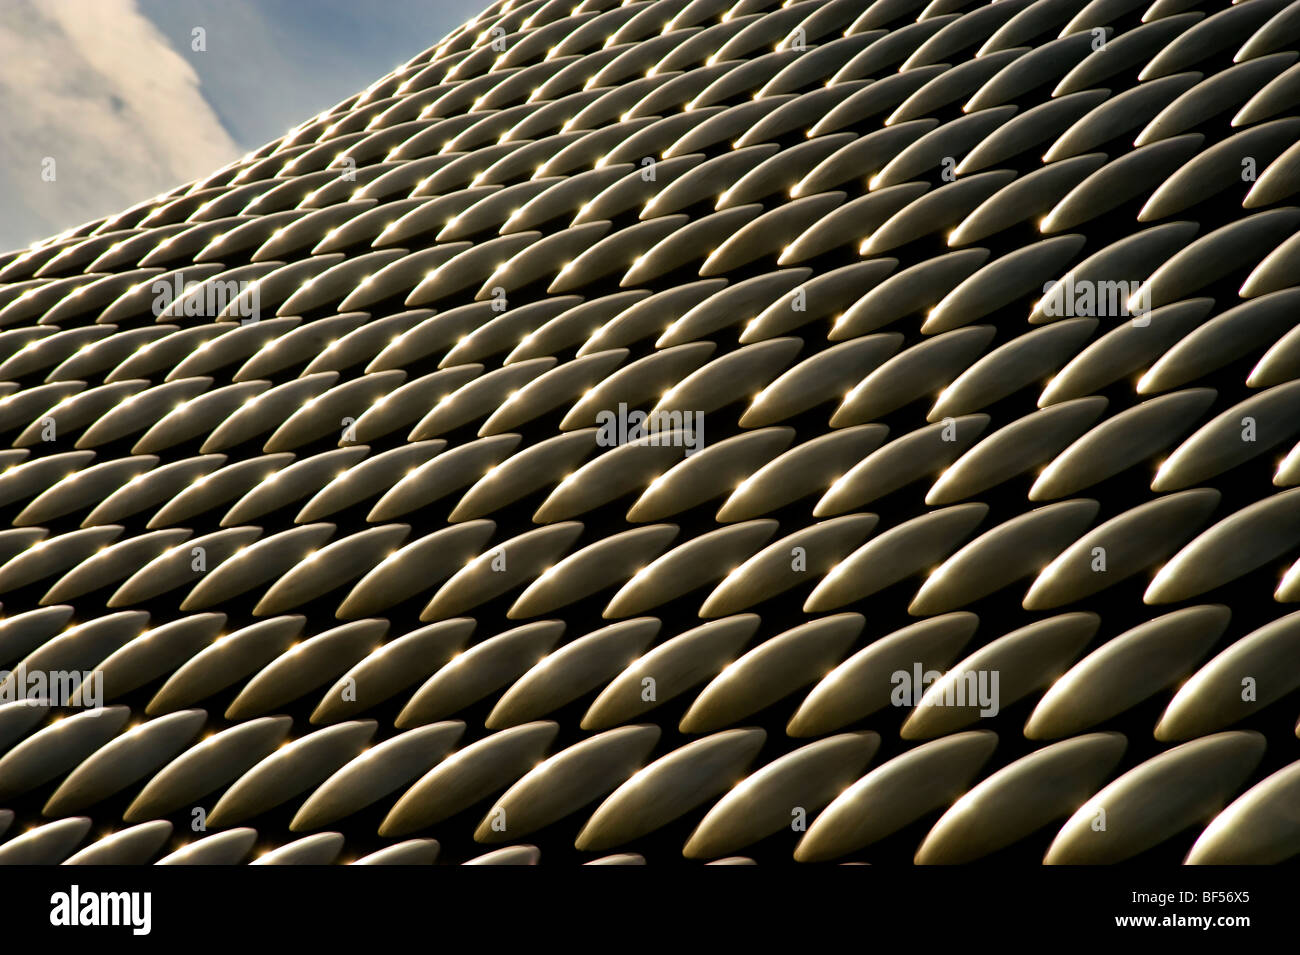 The iconic selfridges building in birmingham city centre covered in the iconic selfridges building in birmingham city centre covered in disks of stainless steel designed by future systems malvernweather Image collections